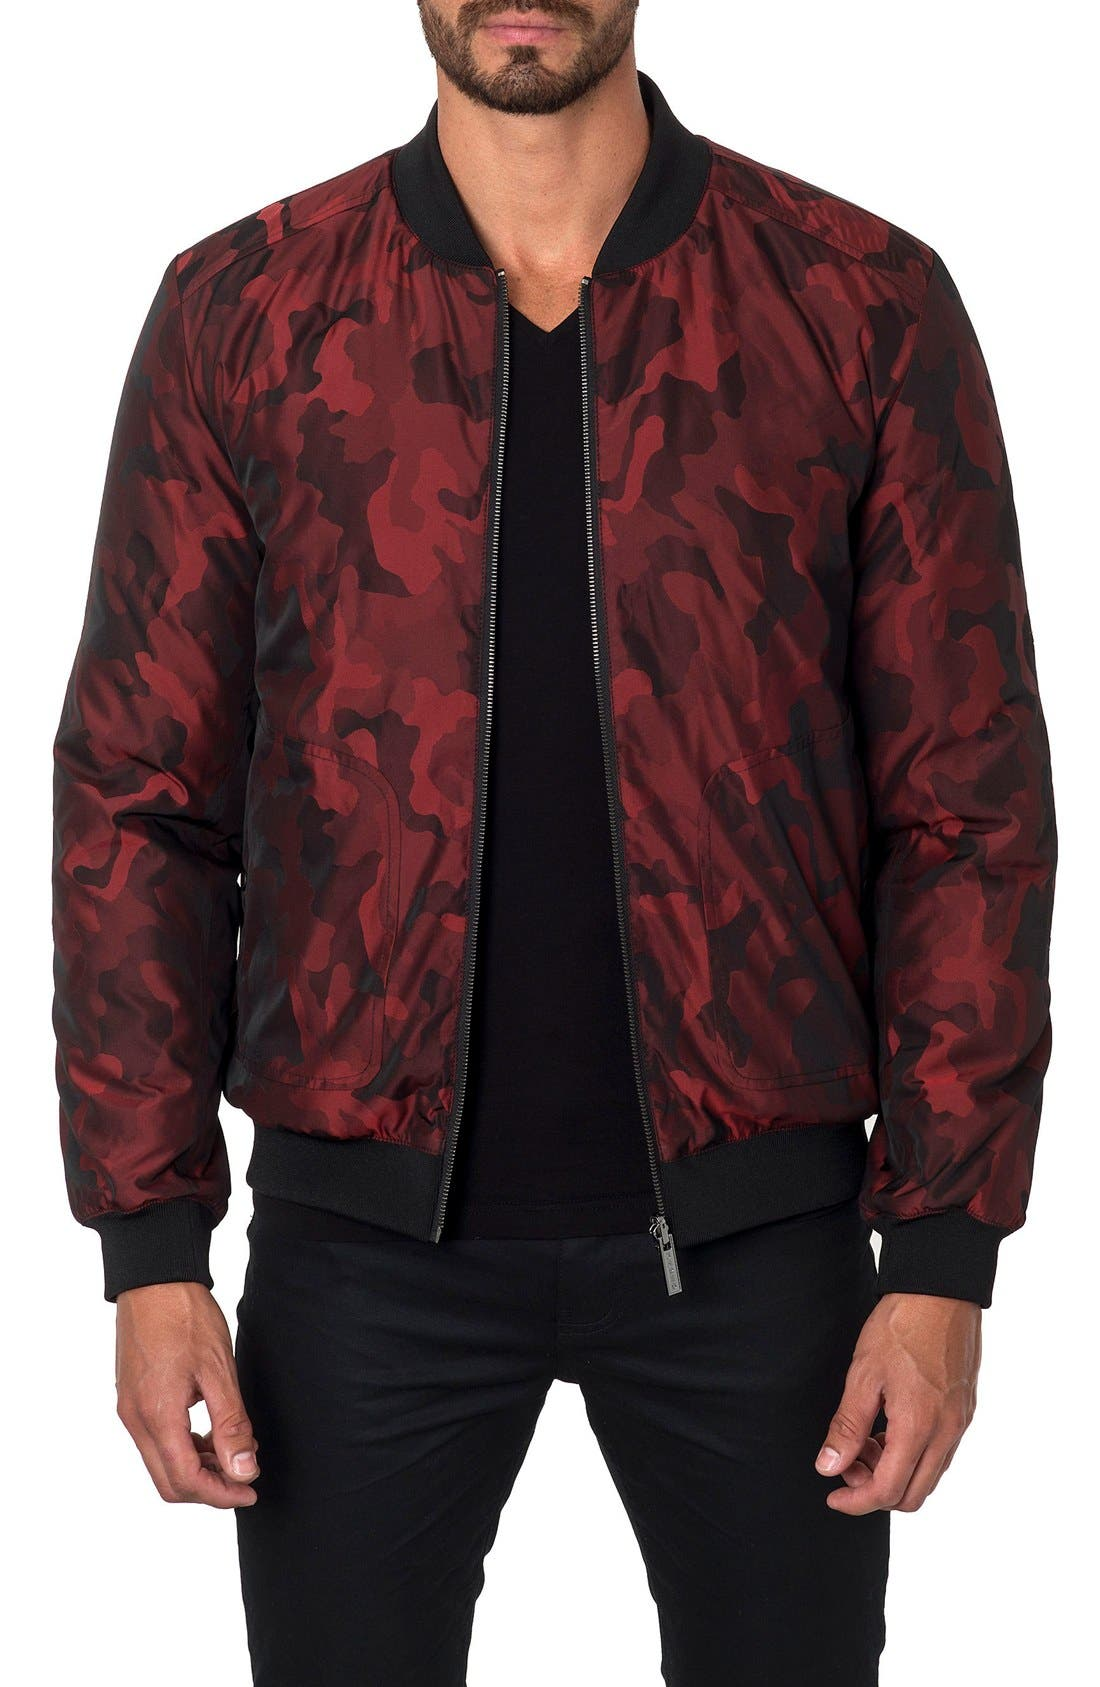 New York Reversible Bomber Jacket,                             Main thumbnail 1, color,                             Red Camo/ Black Quilted